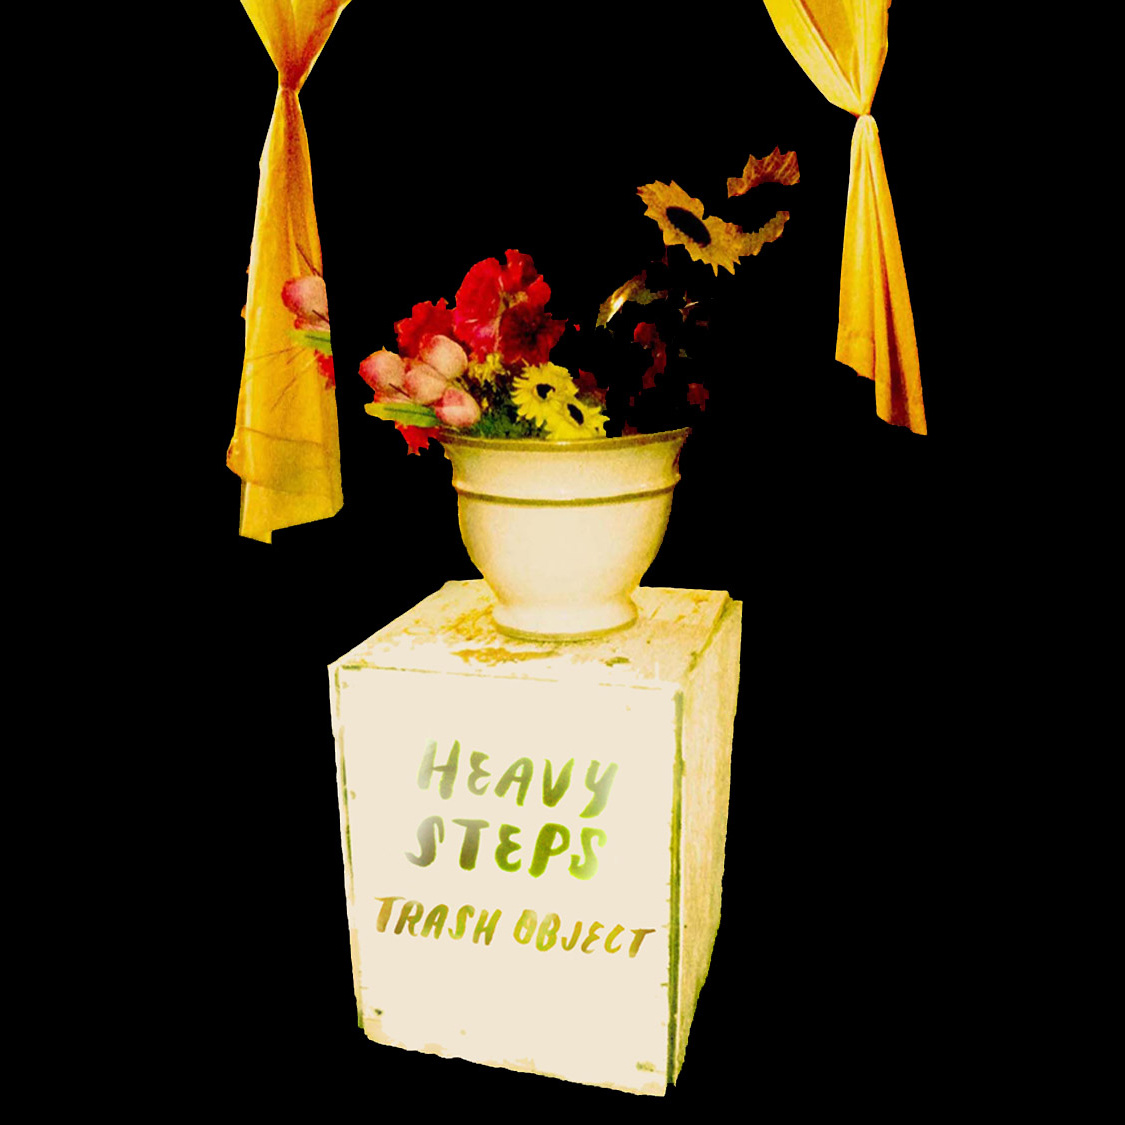 Heavy Steps Trash Object